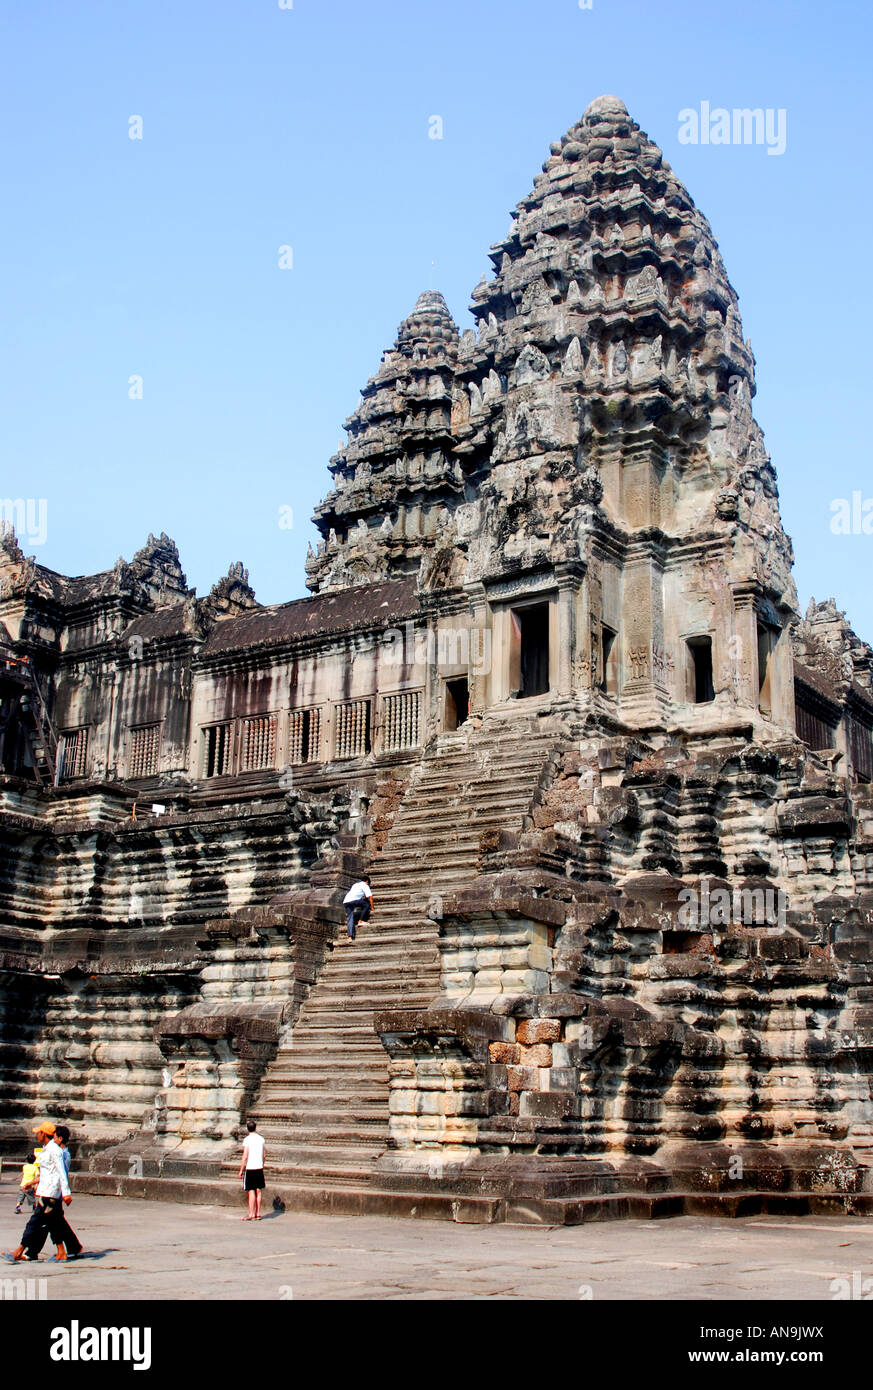 Cambodia Angkor Wat Classical Style Of Khmer Architecture